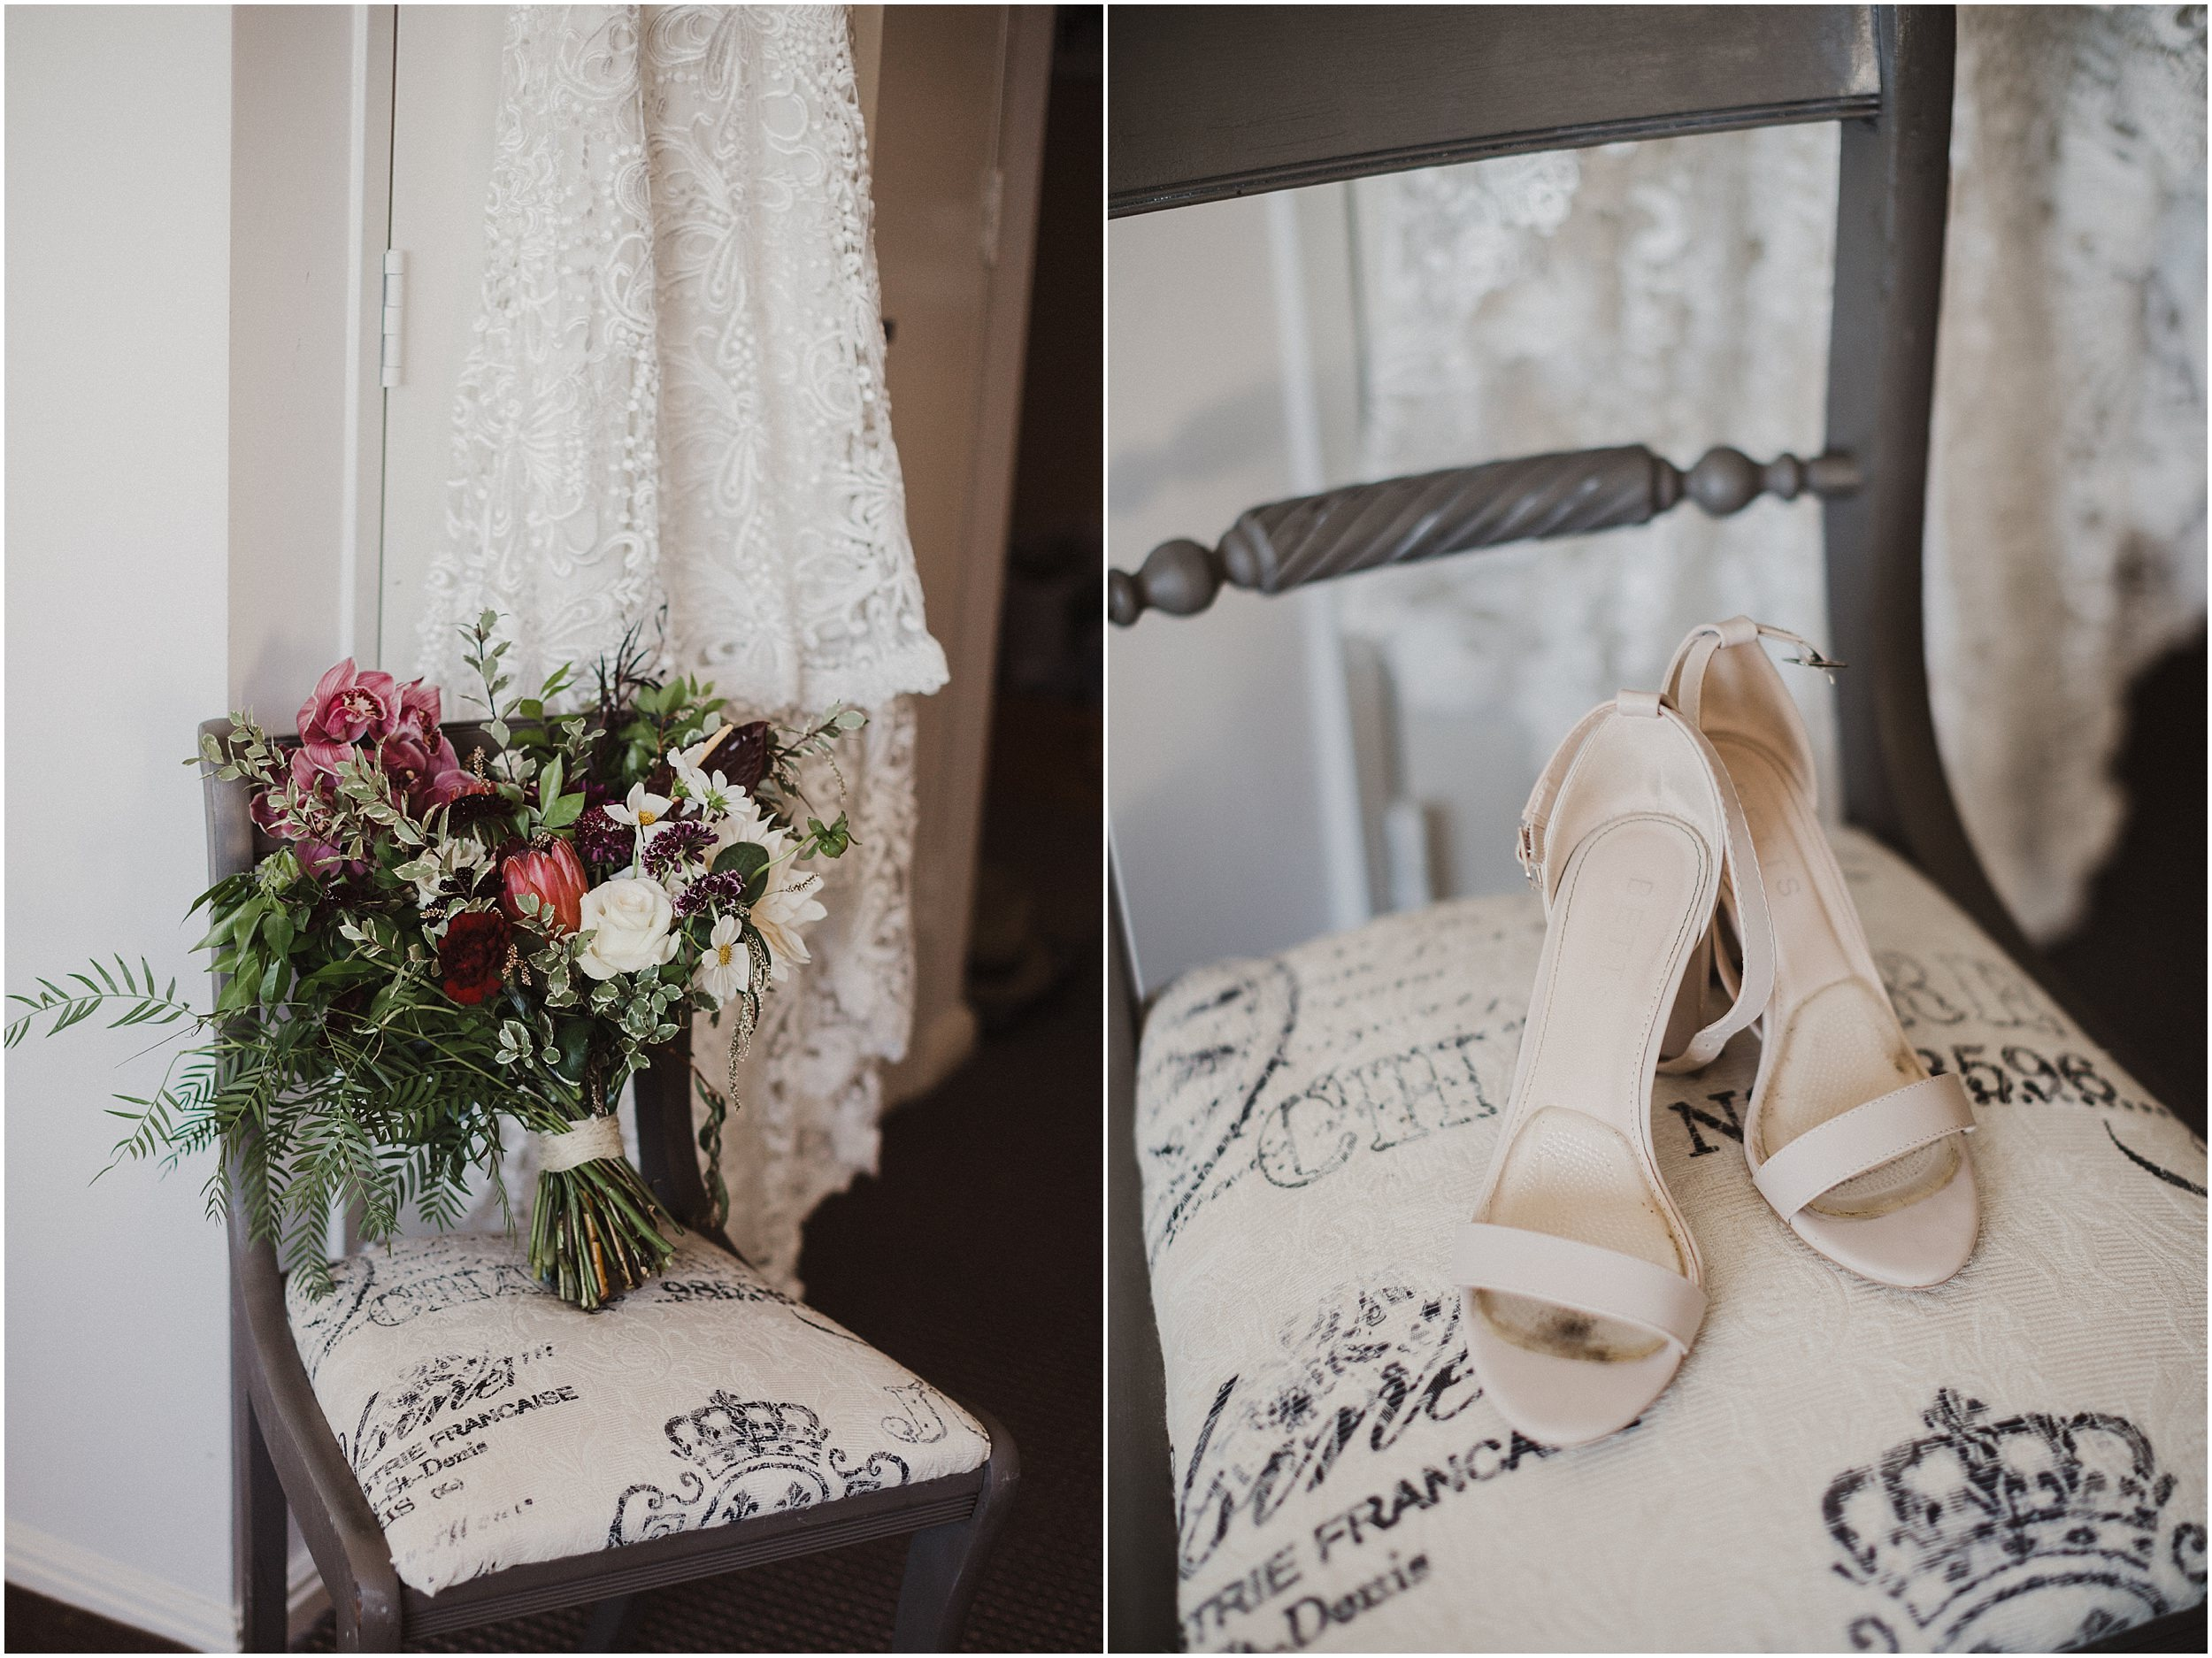 Sydney Wedding bridal details